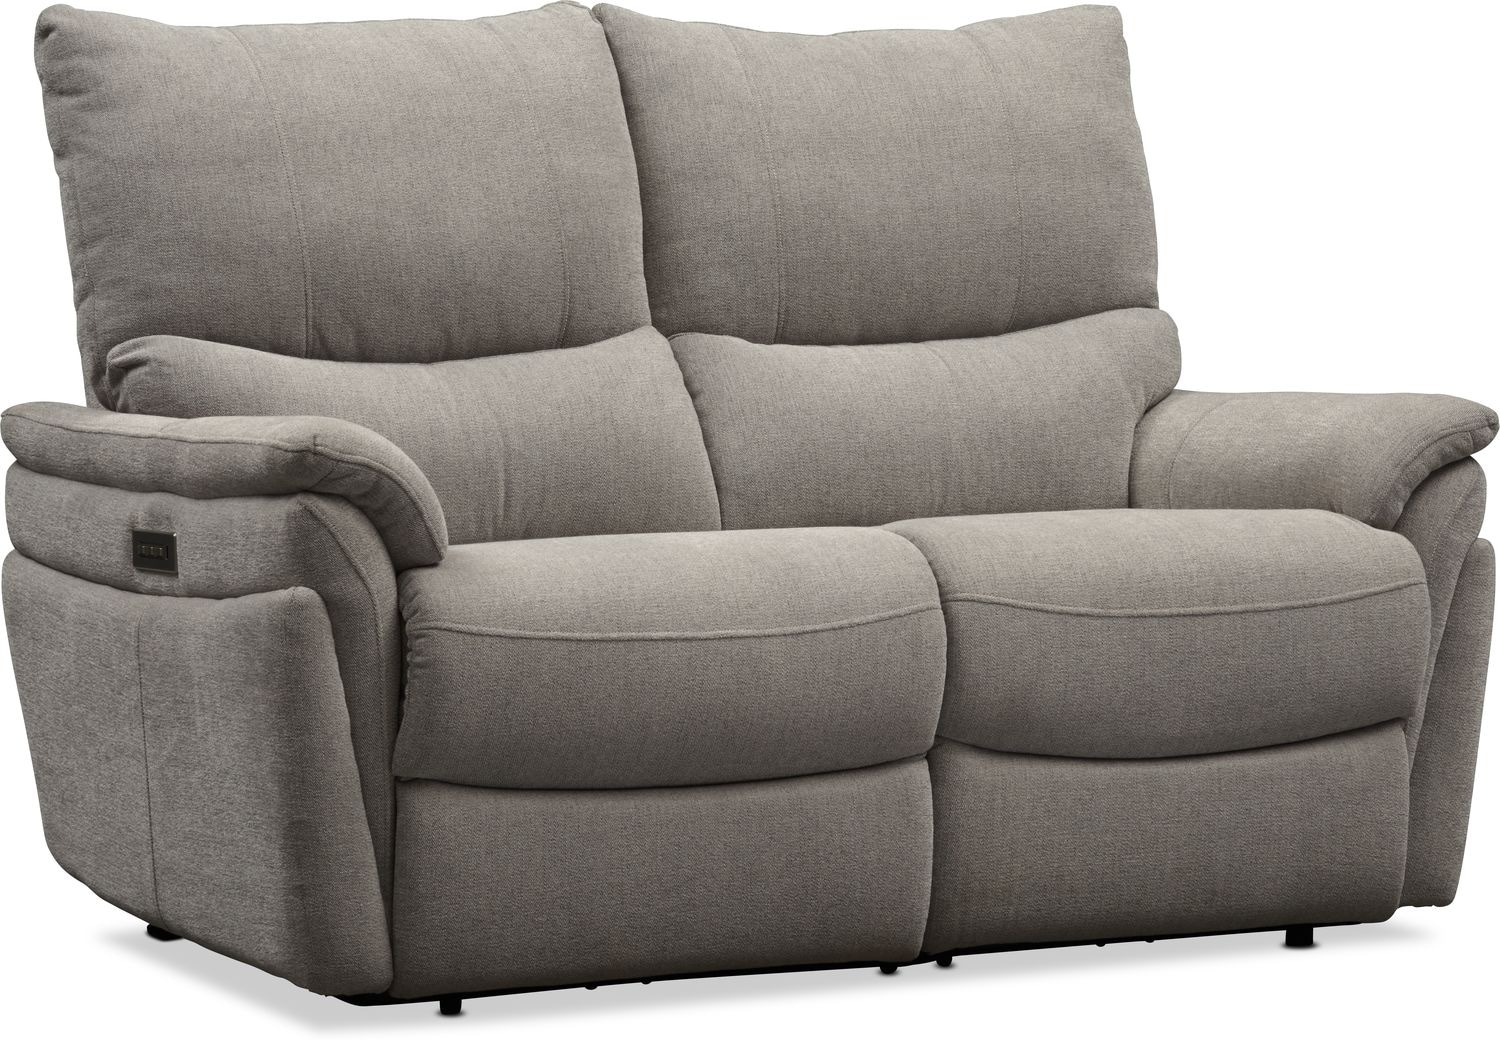 Living Room Furniture - Maddox Triple Power Reclining Loveseat